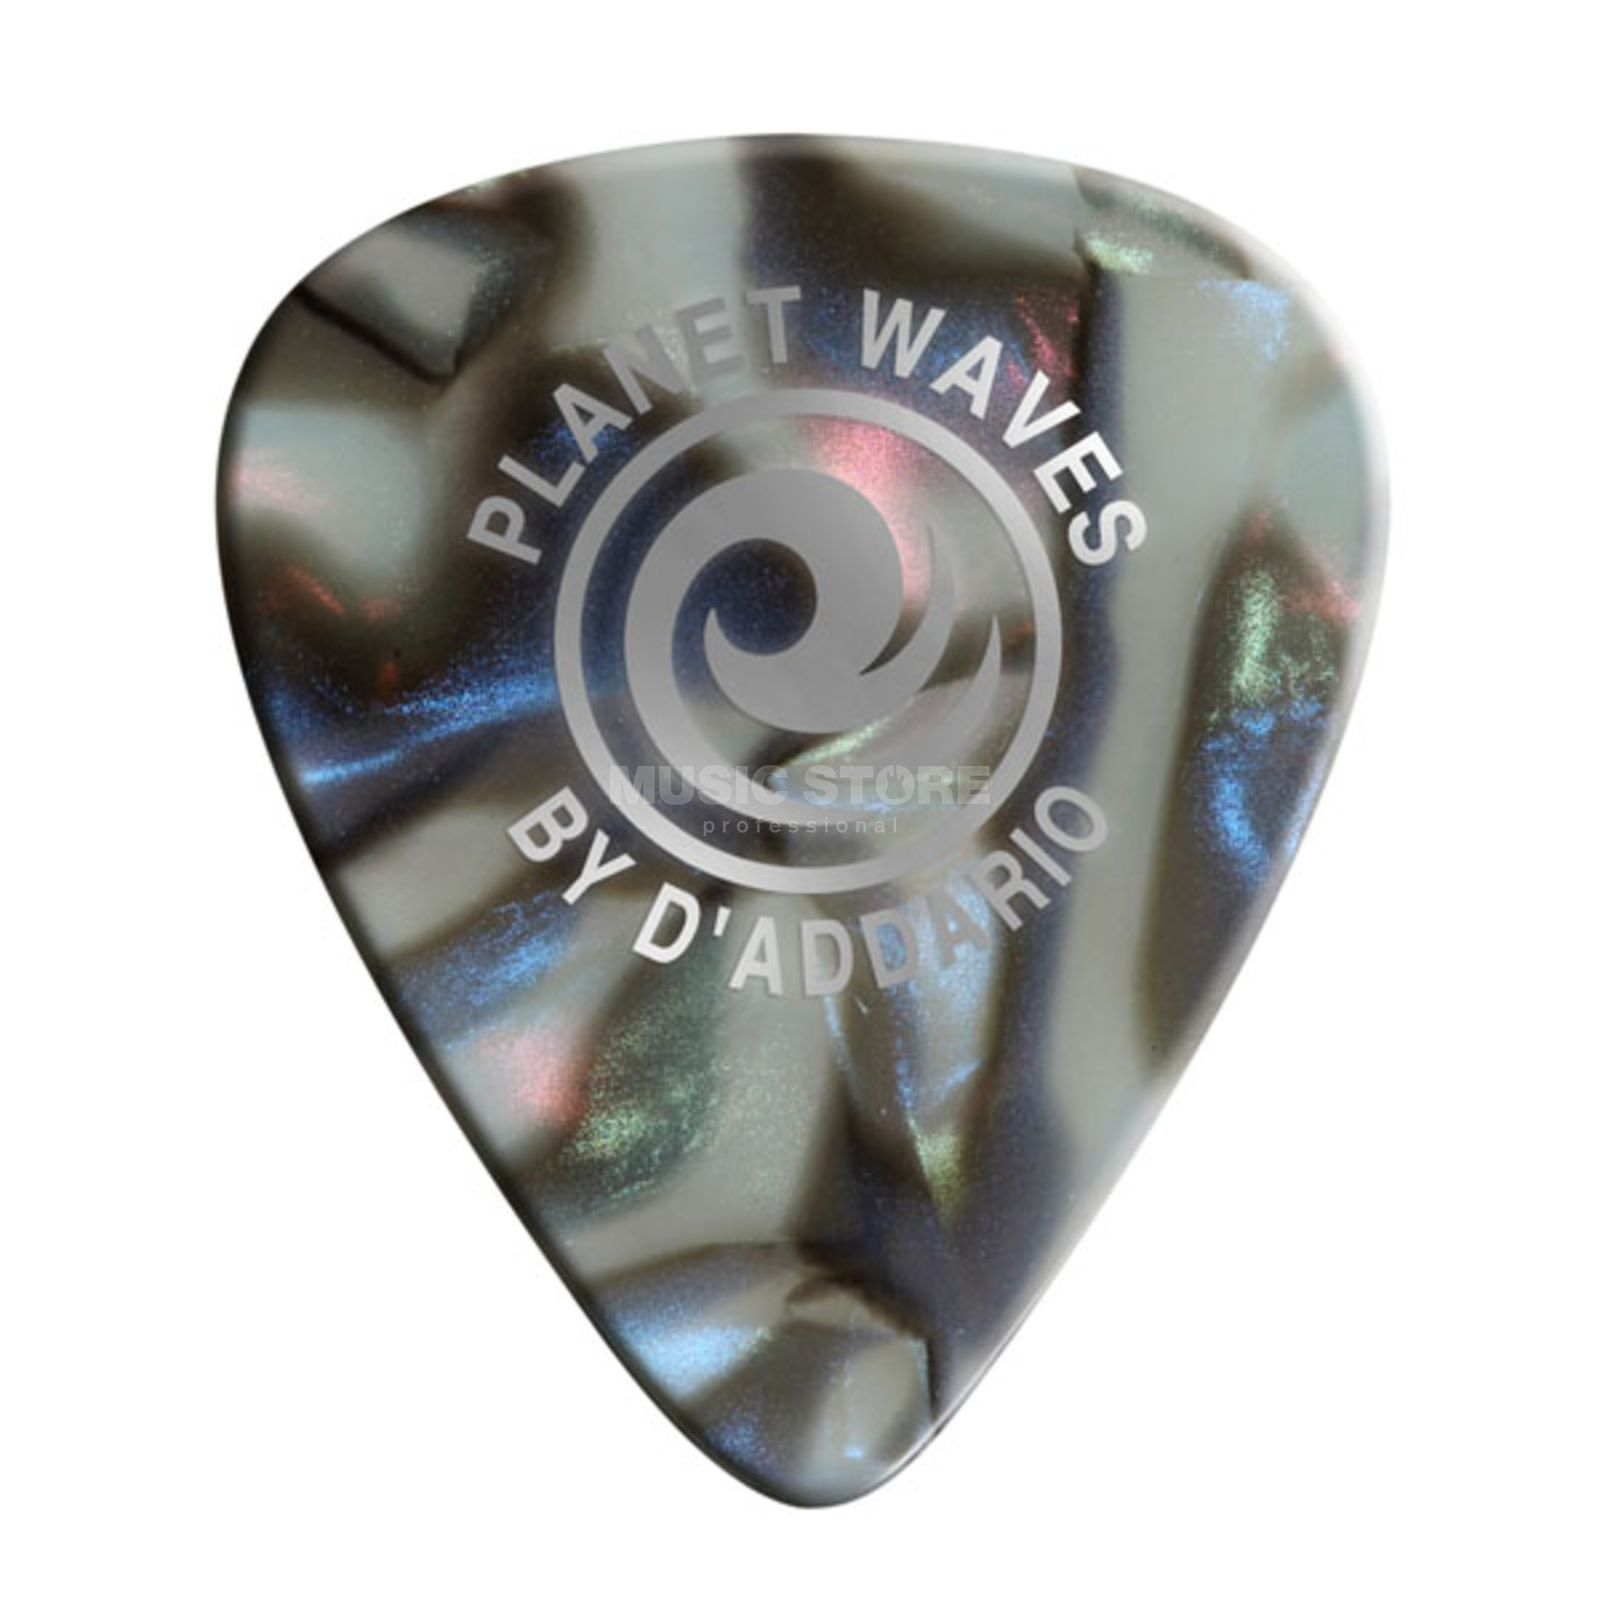 D'Addario Planet Waves Abalone Picks 1,25mm 10-Pack, 1CAB7-10 Produktbild